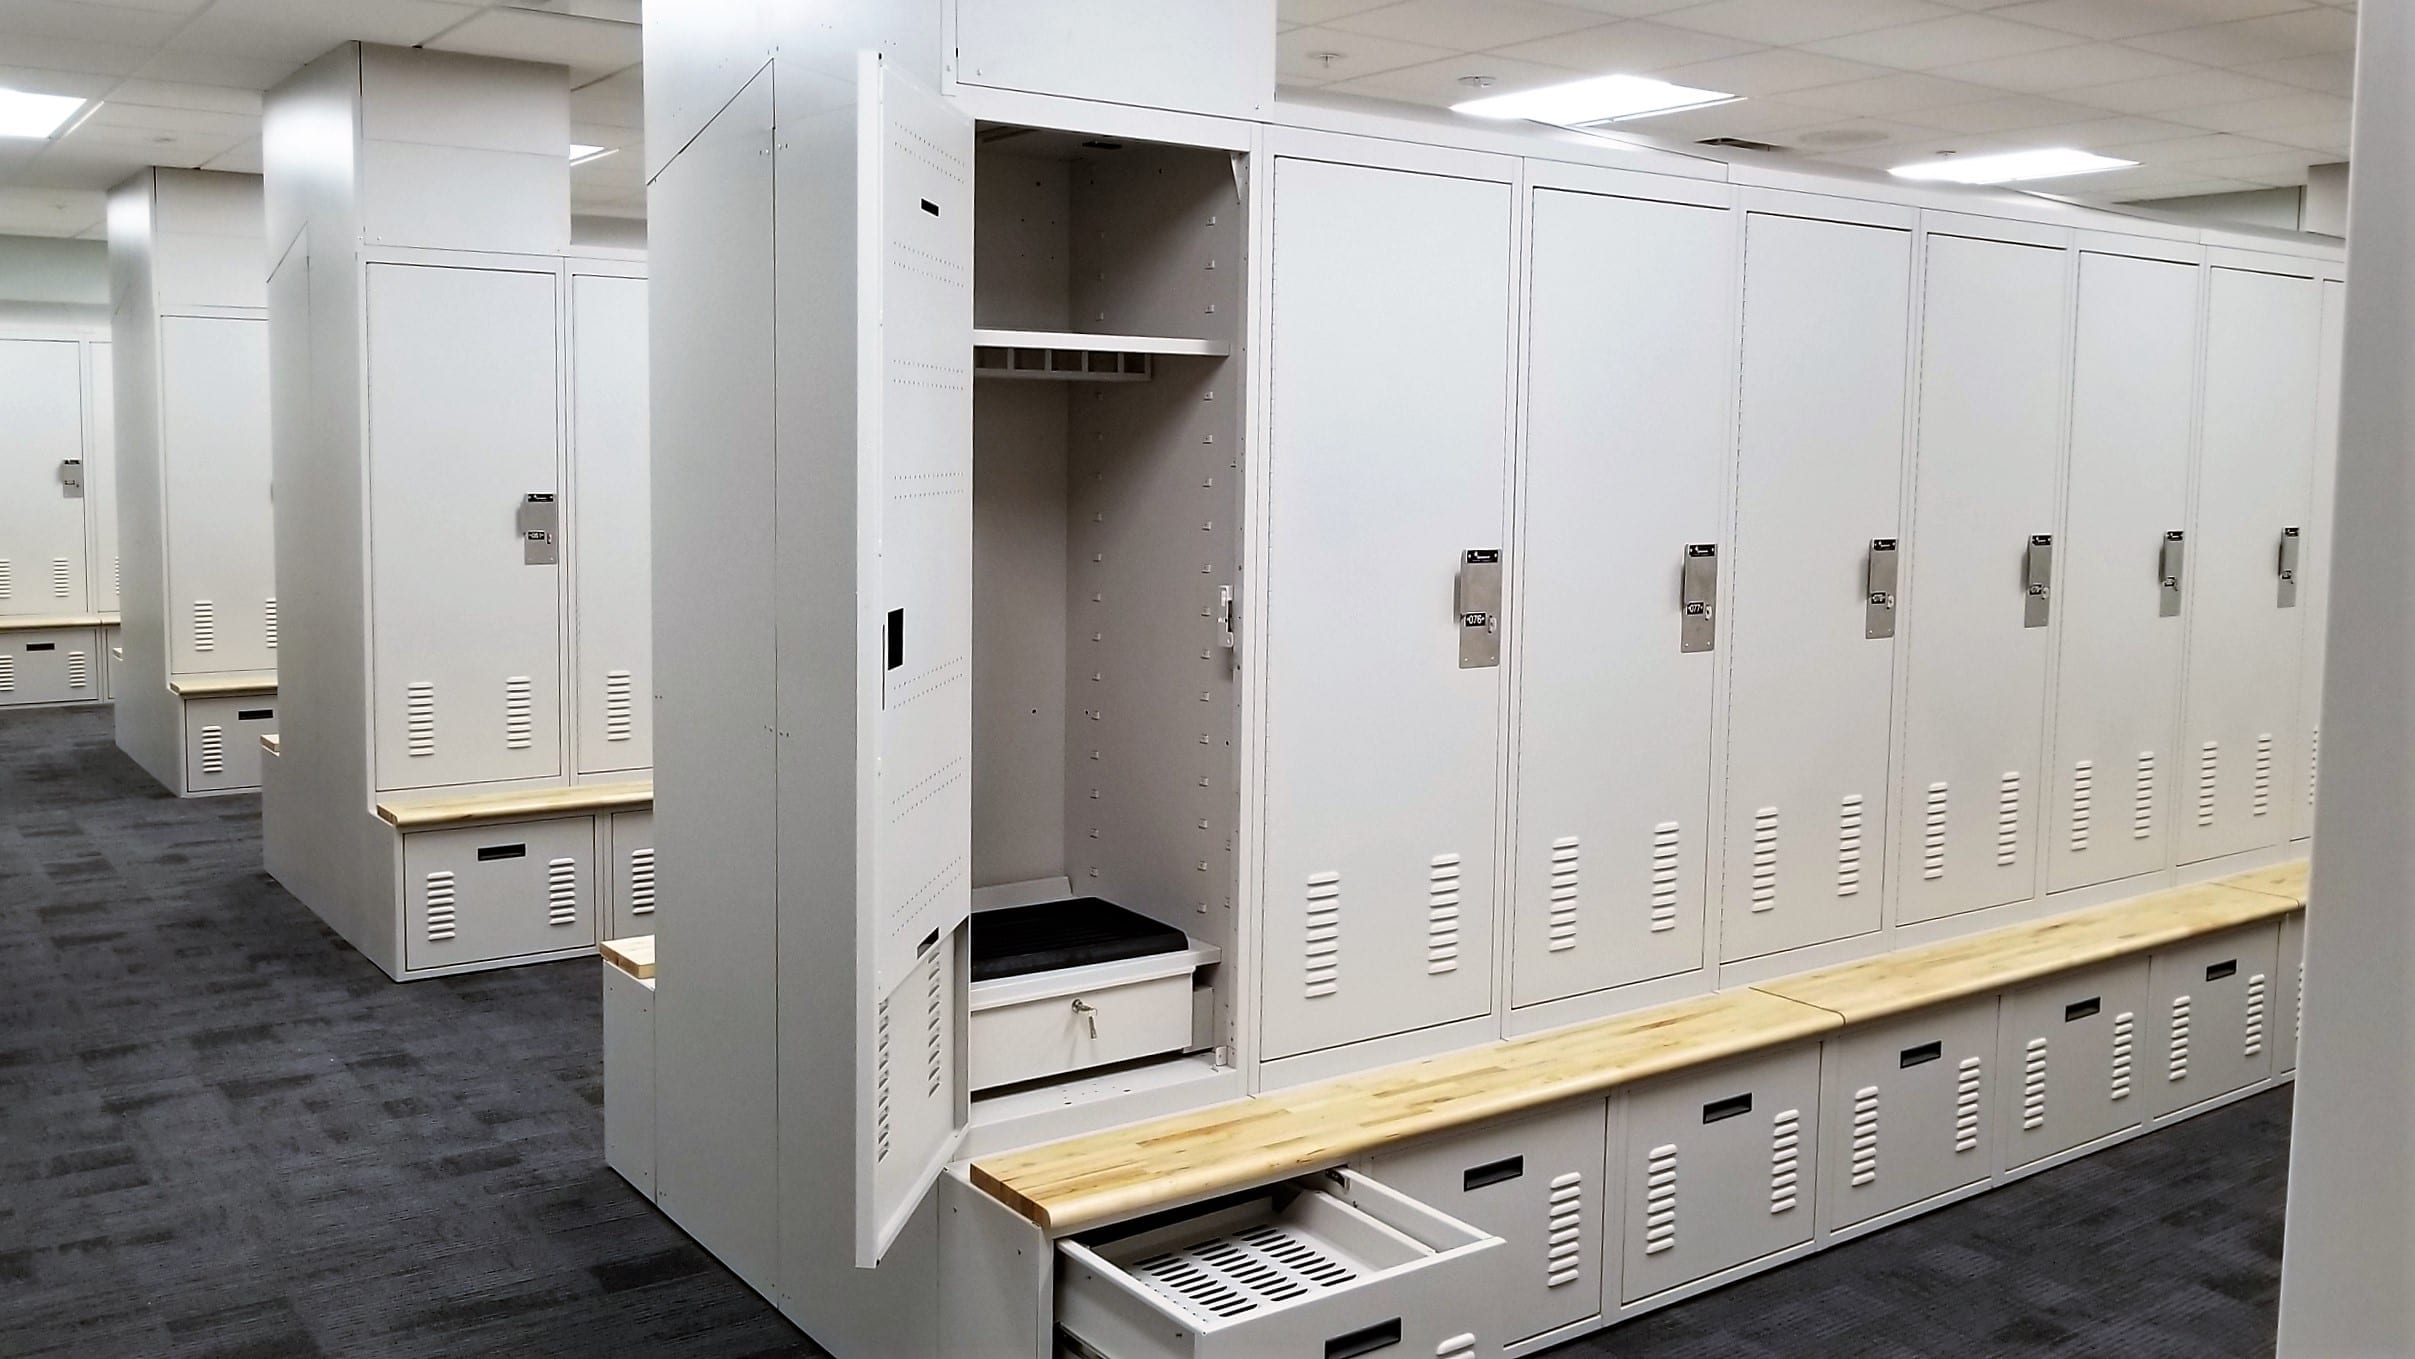 O'Fallon PD Lockers 1